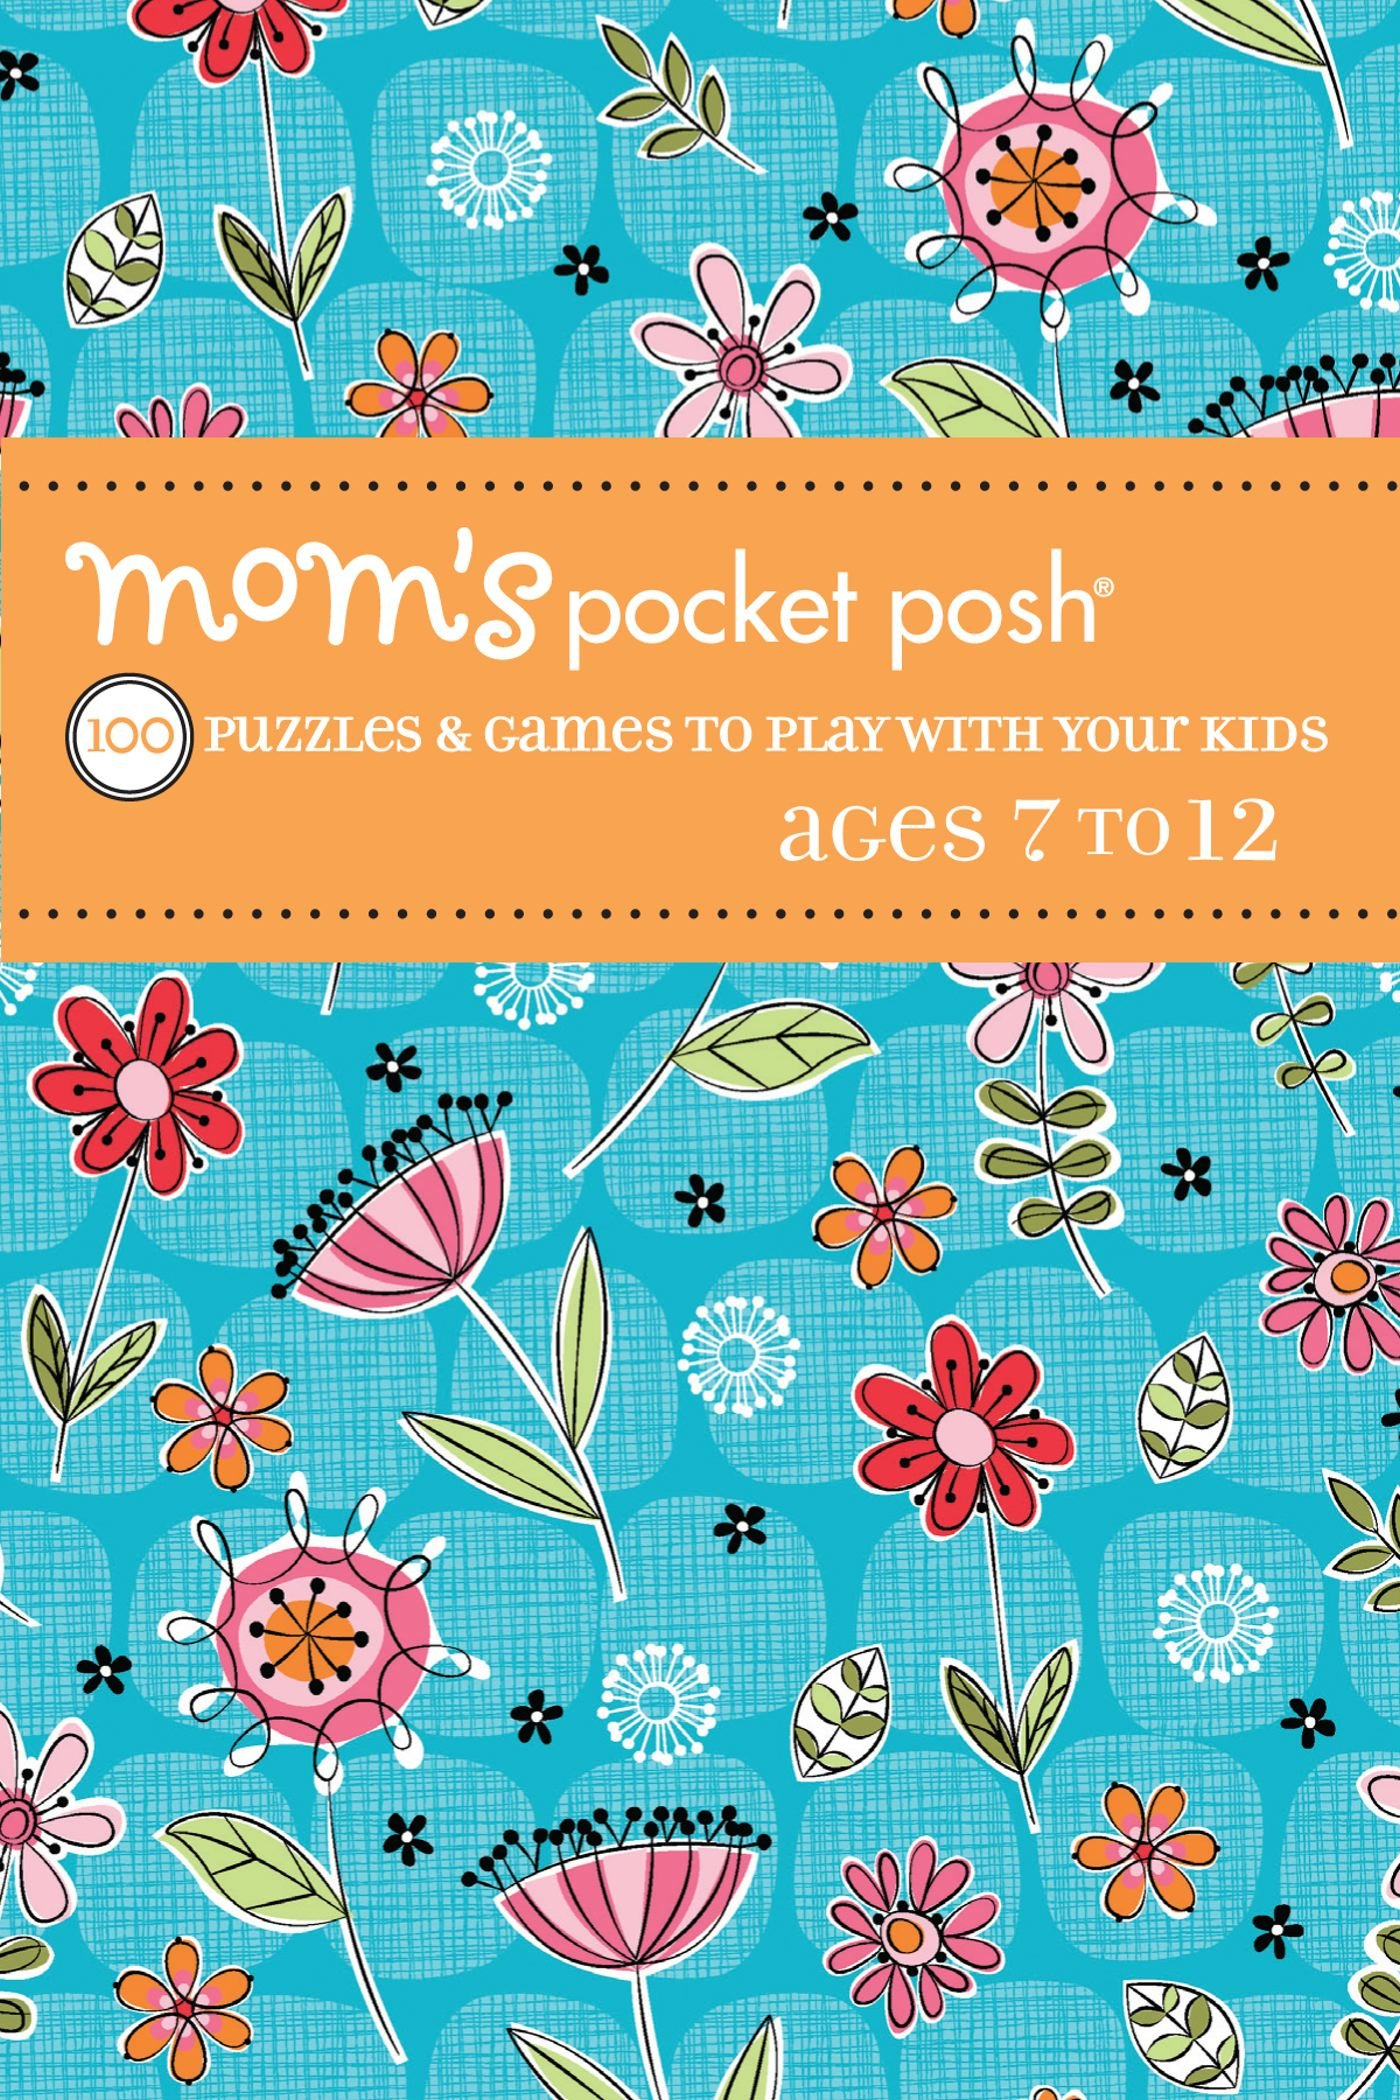 Mom's Pocket Posh: 100 Puzzles & Games to Play with Your Kids Ages 7 to 12 pdf epub